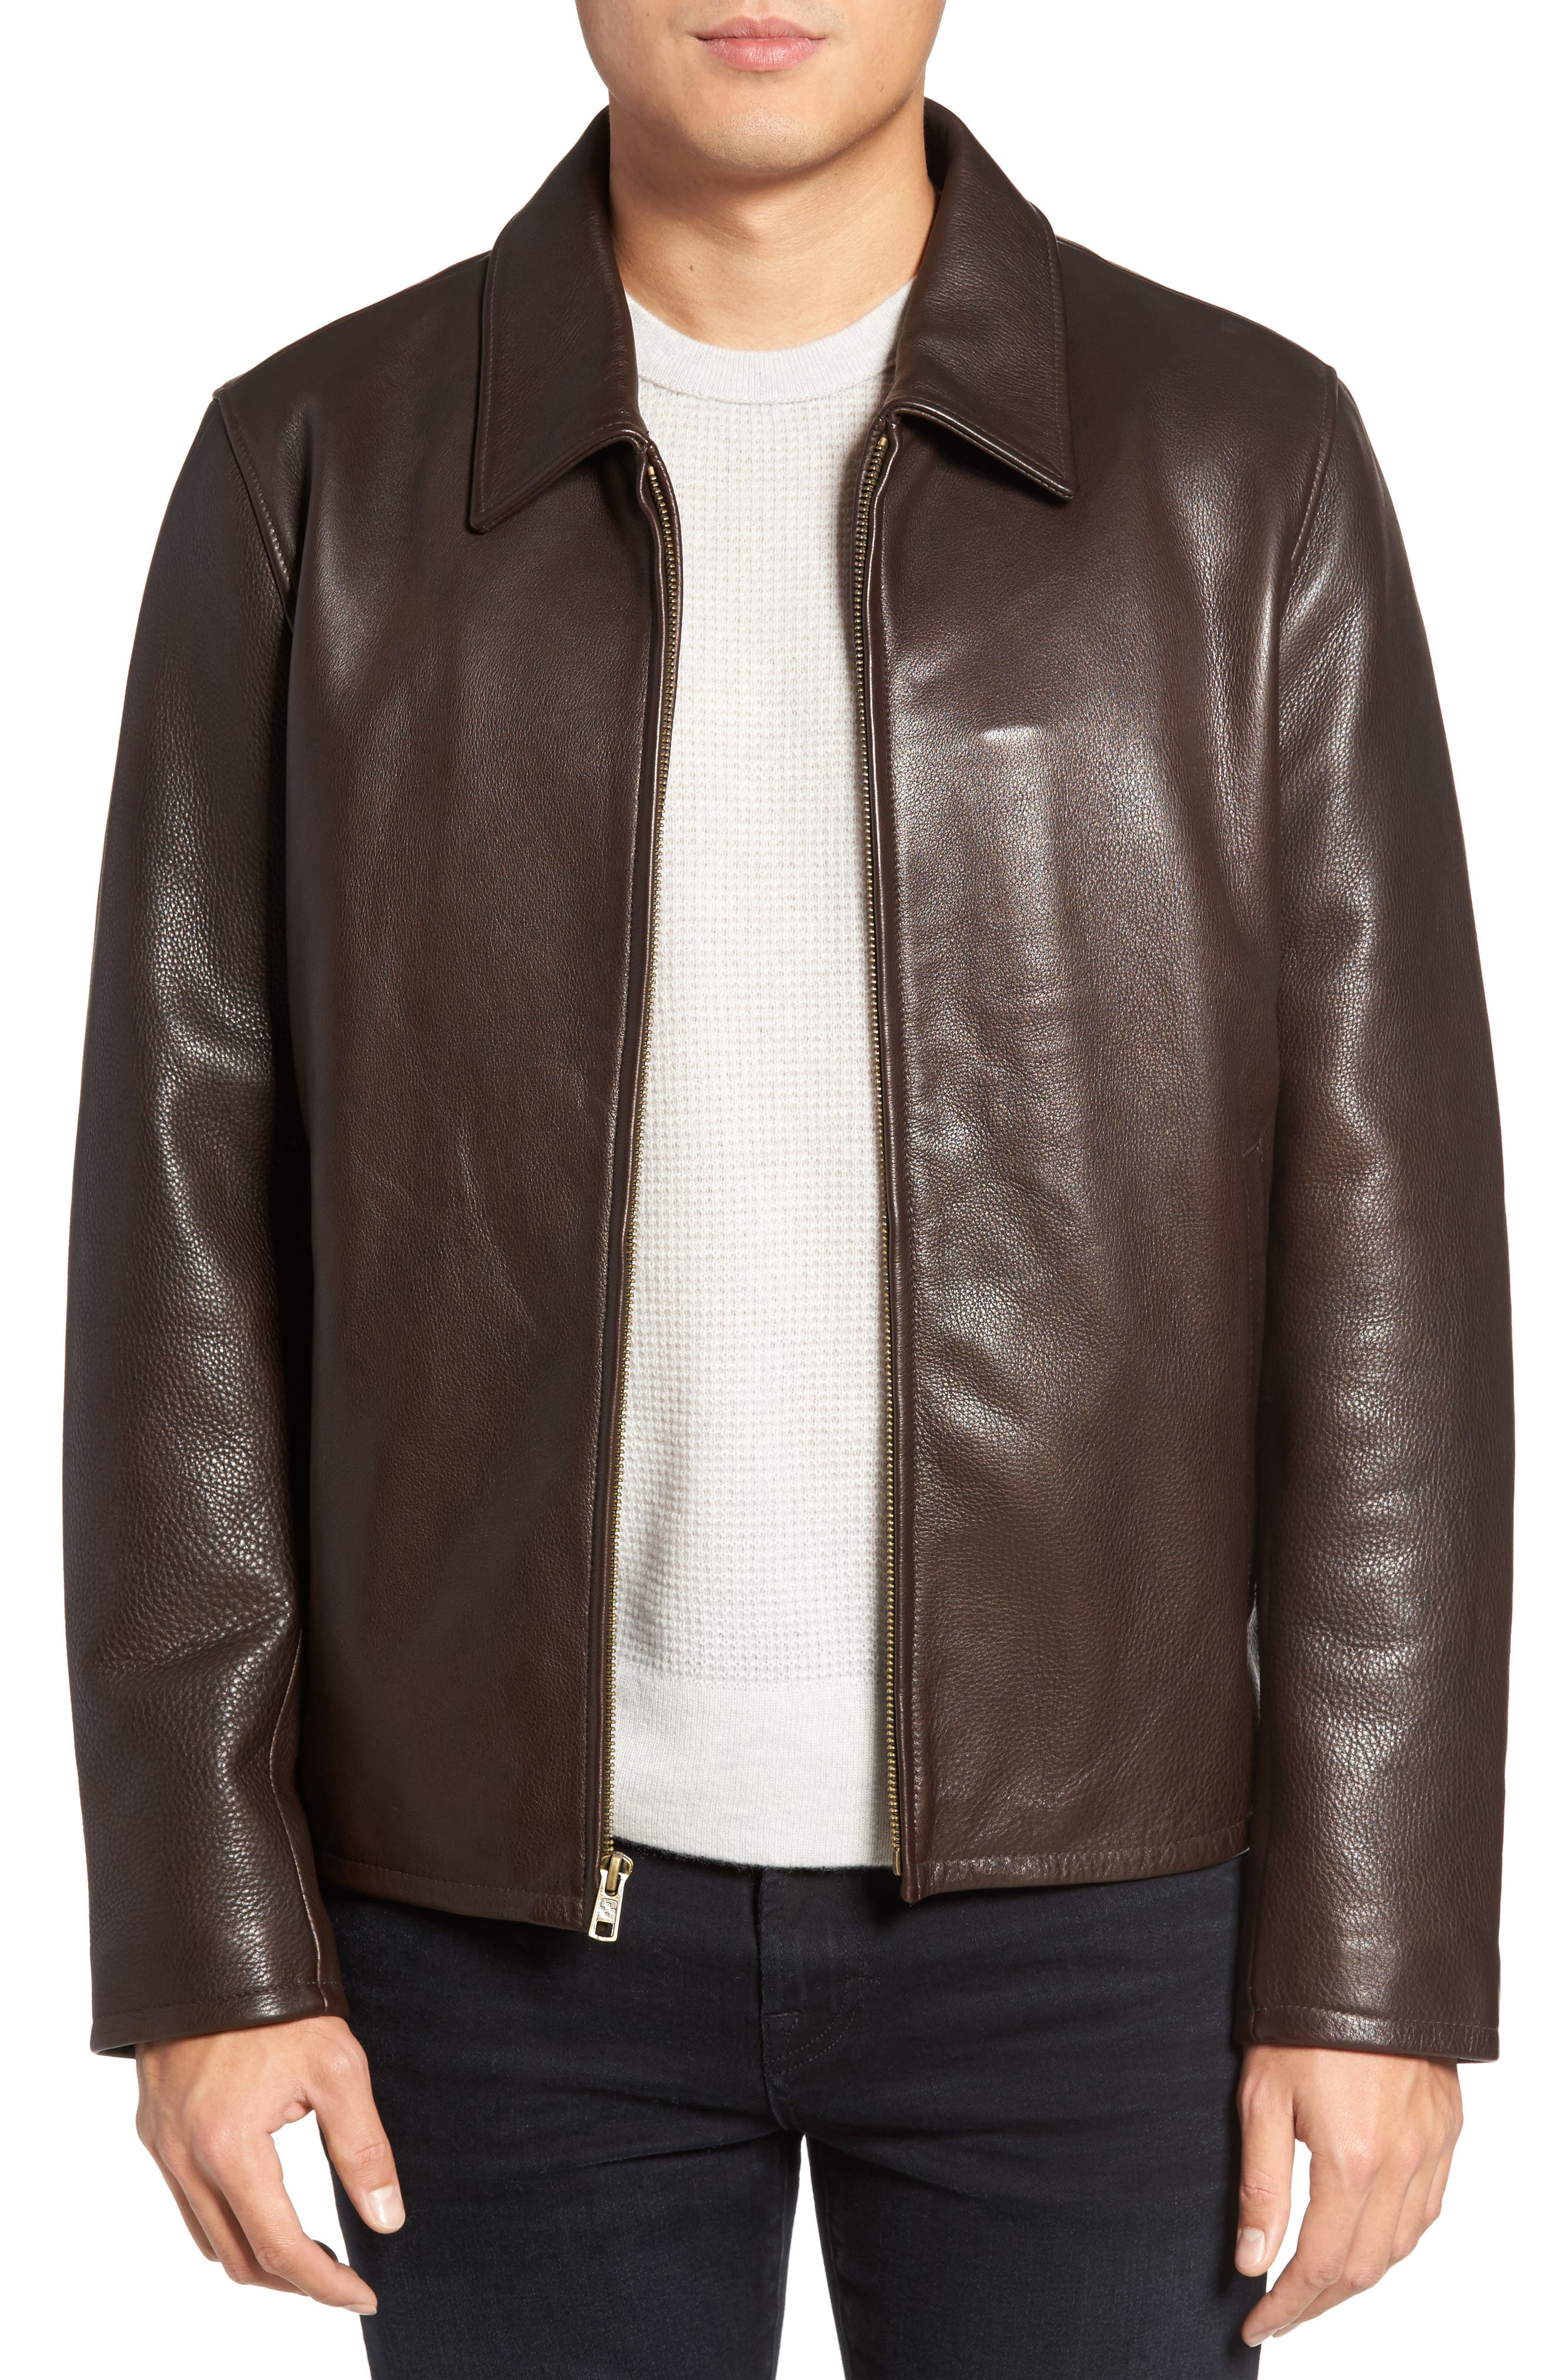 Main Image - Vince Camuto Leather Zip Front Jacket